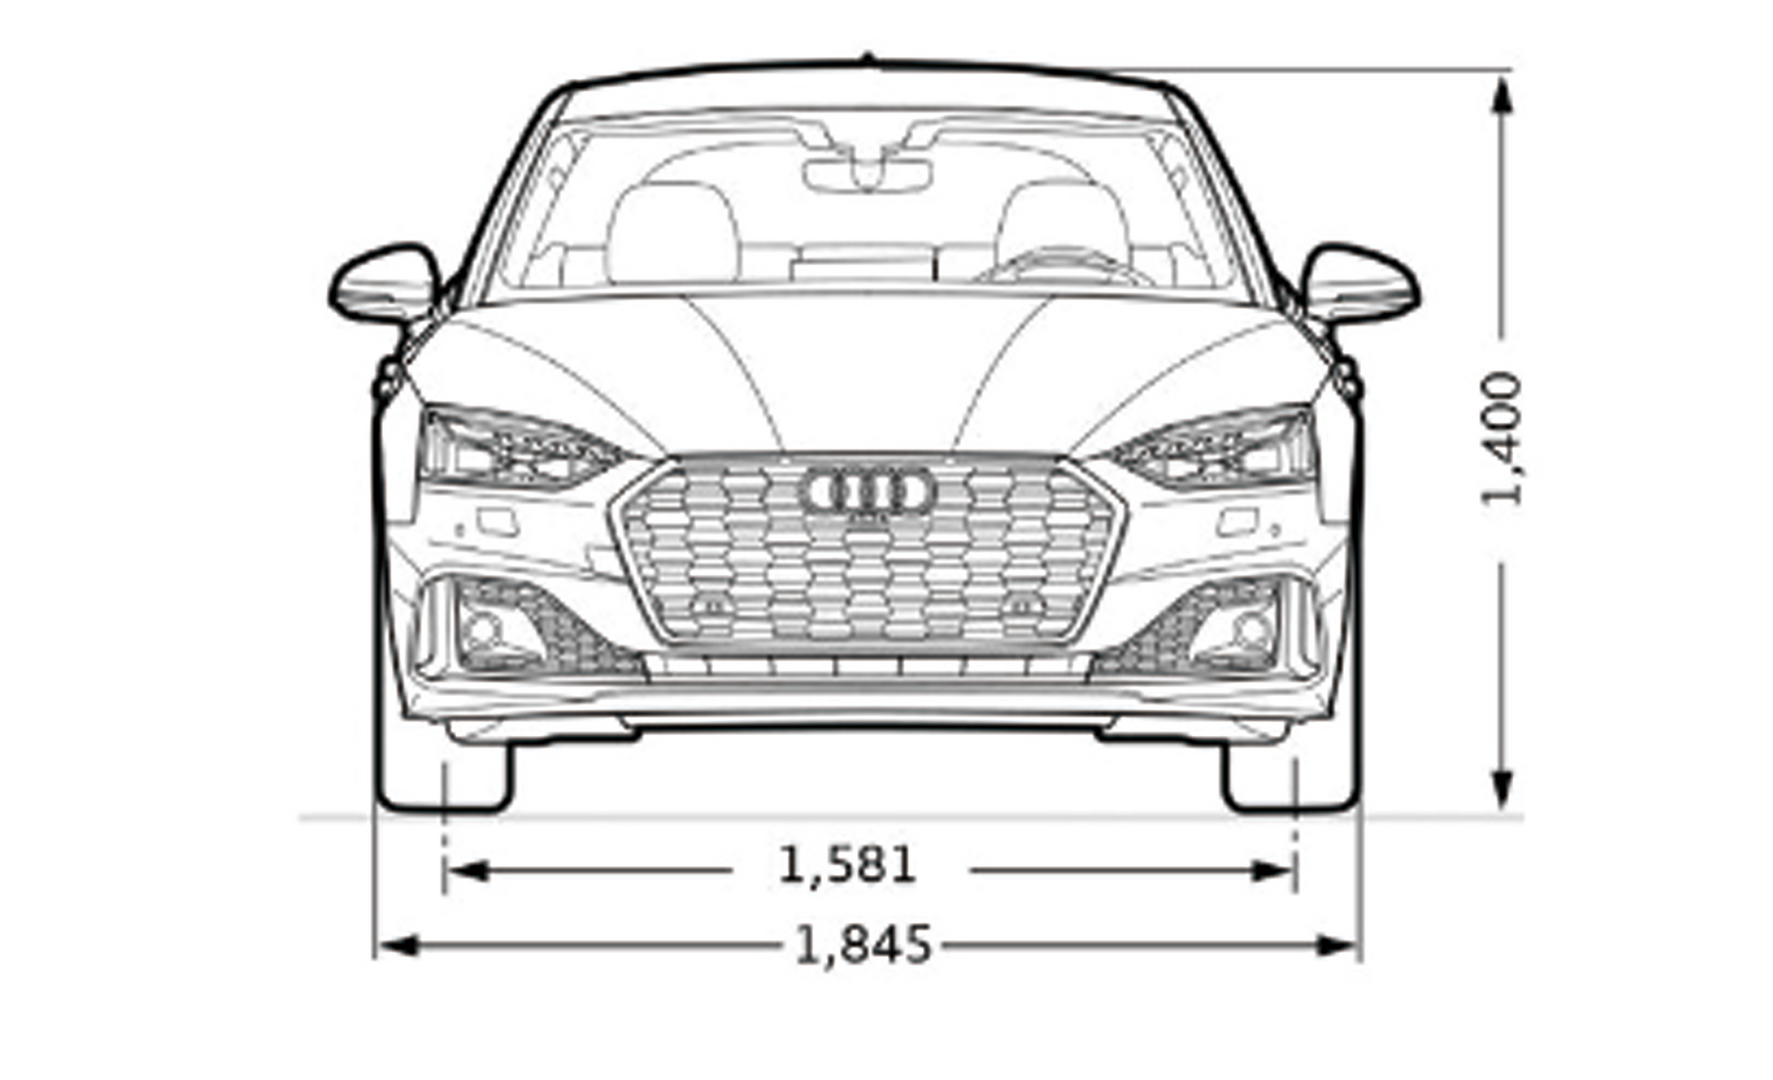 A5 front